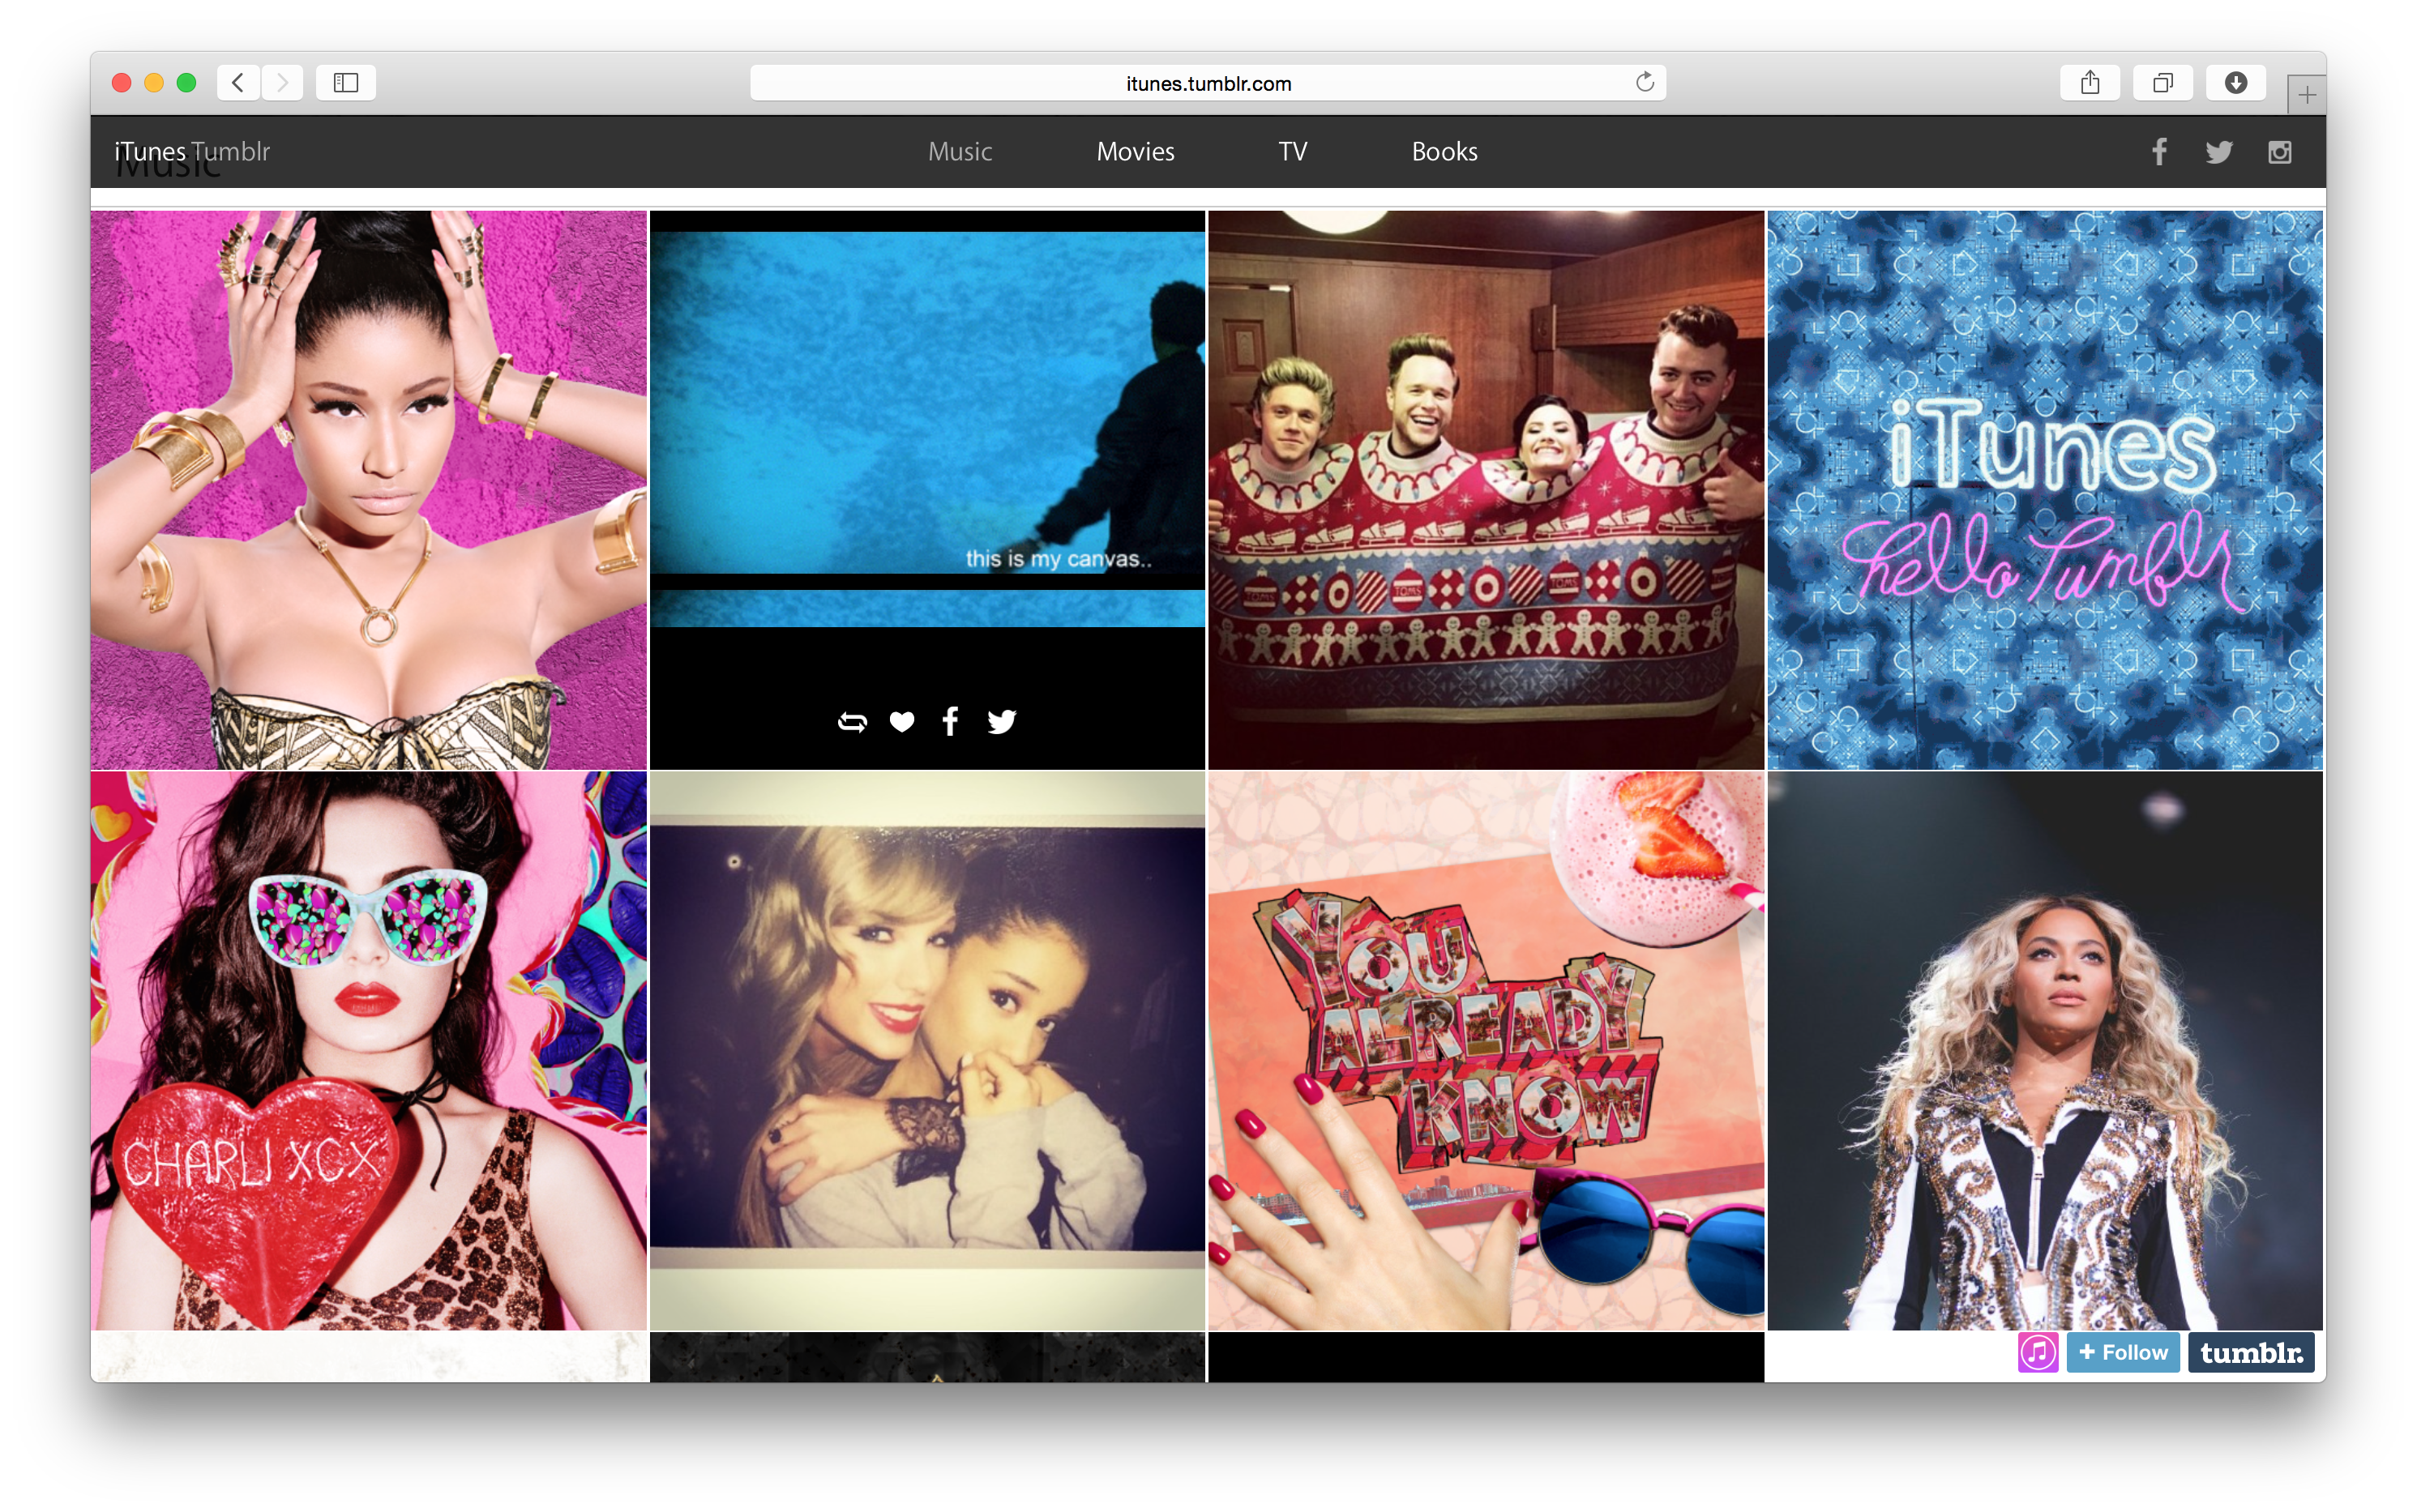 Apple expands its social presence with new iTunes Tumblr blog